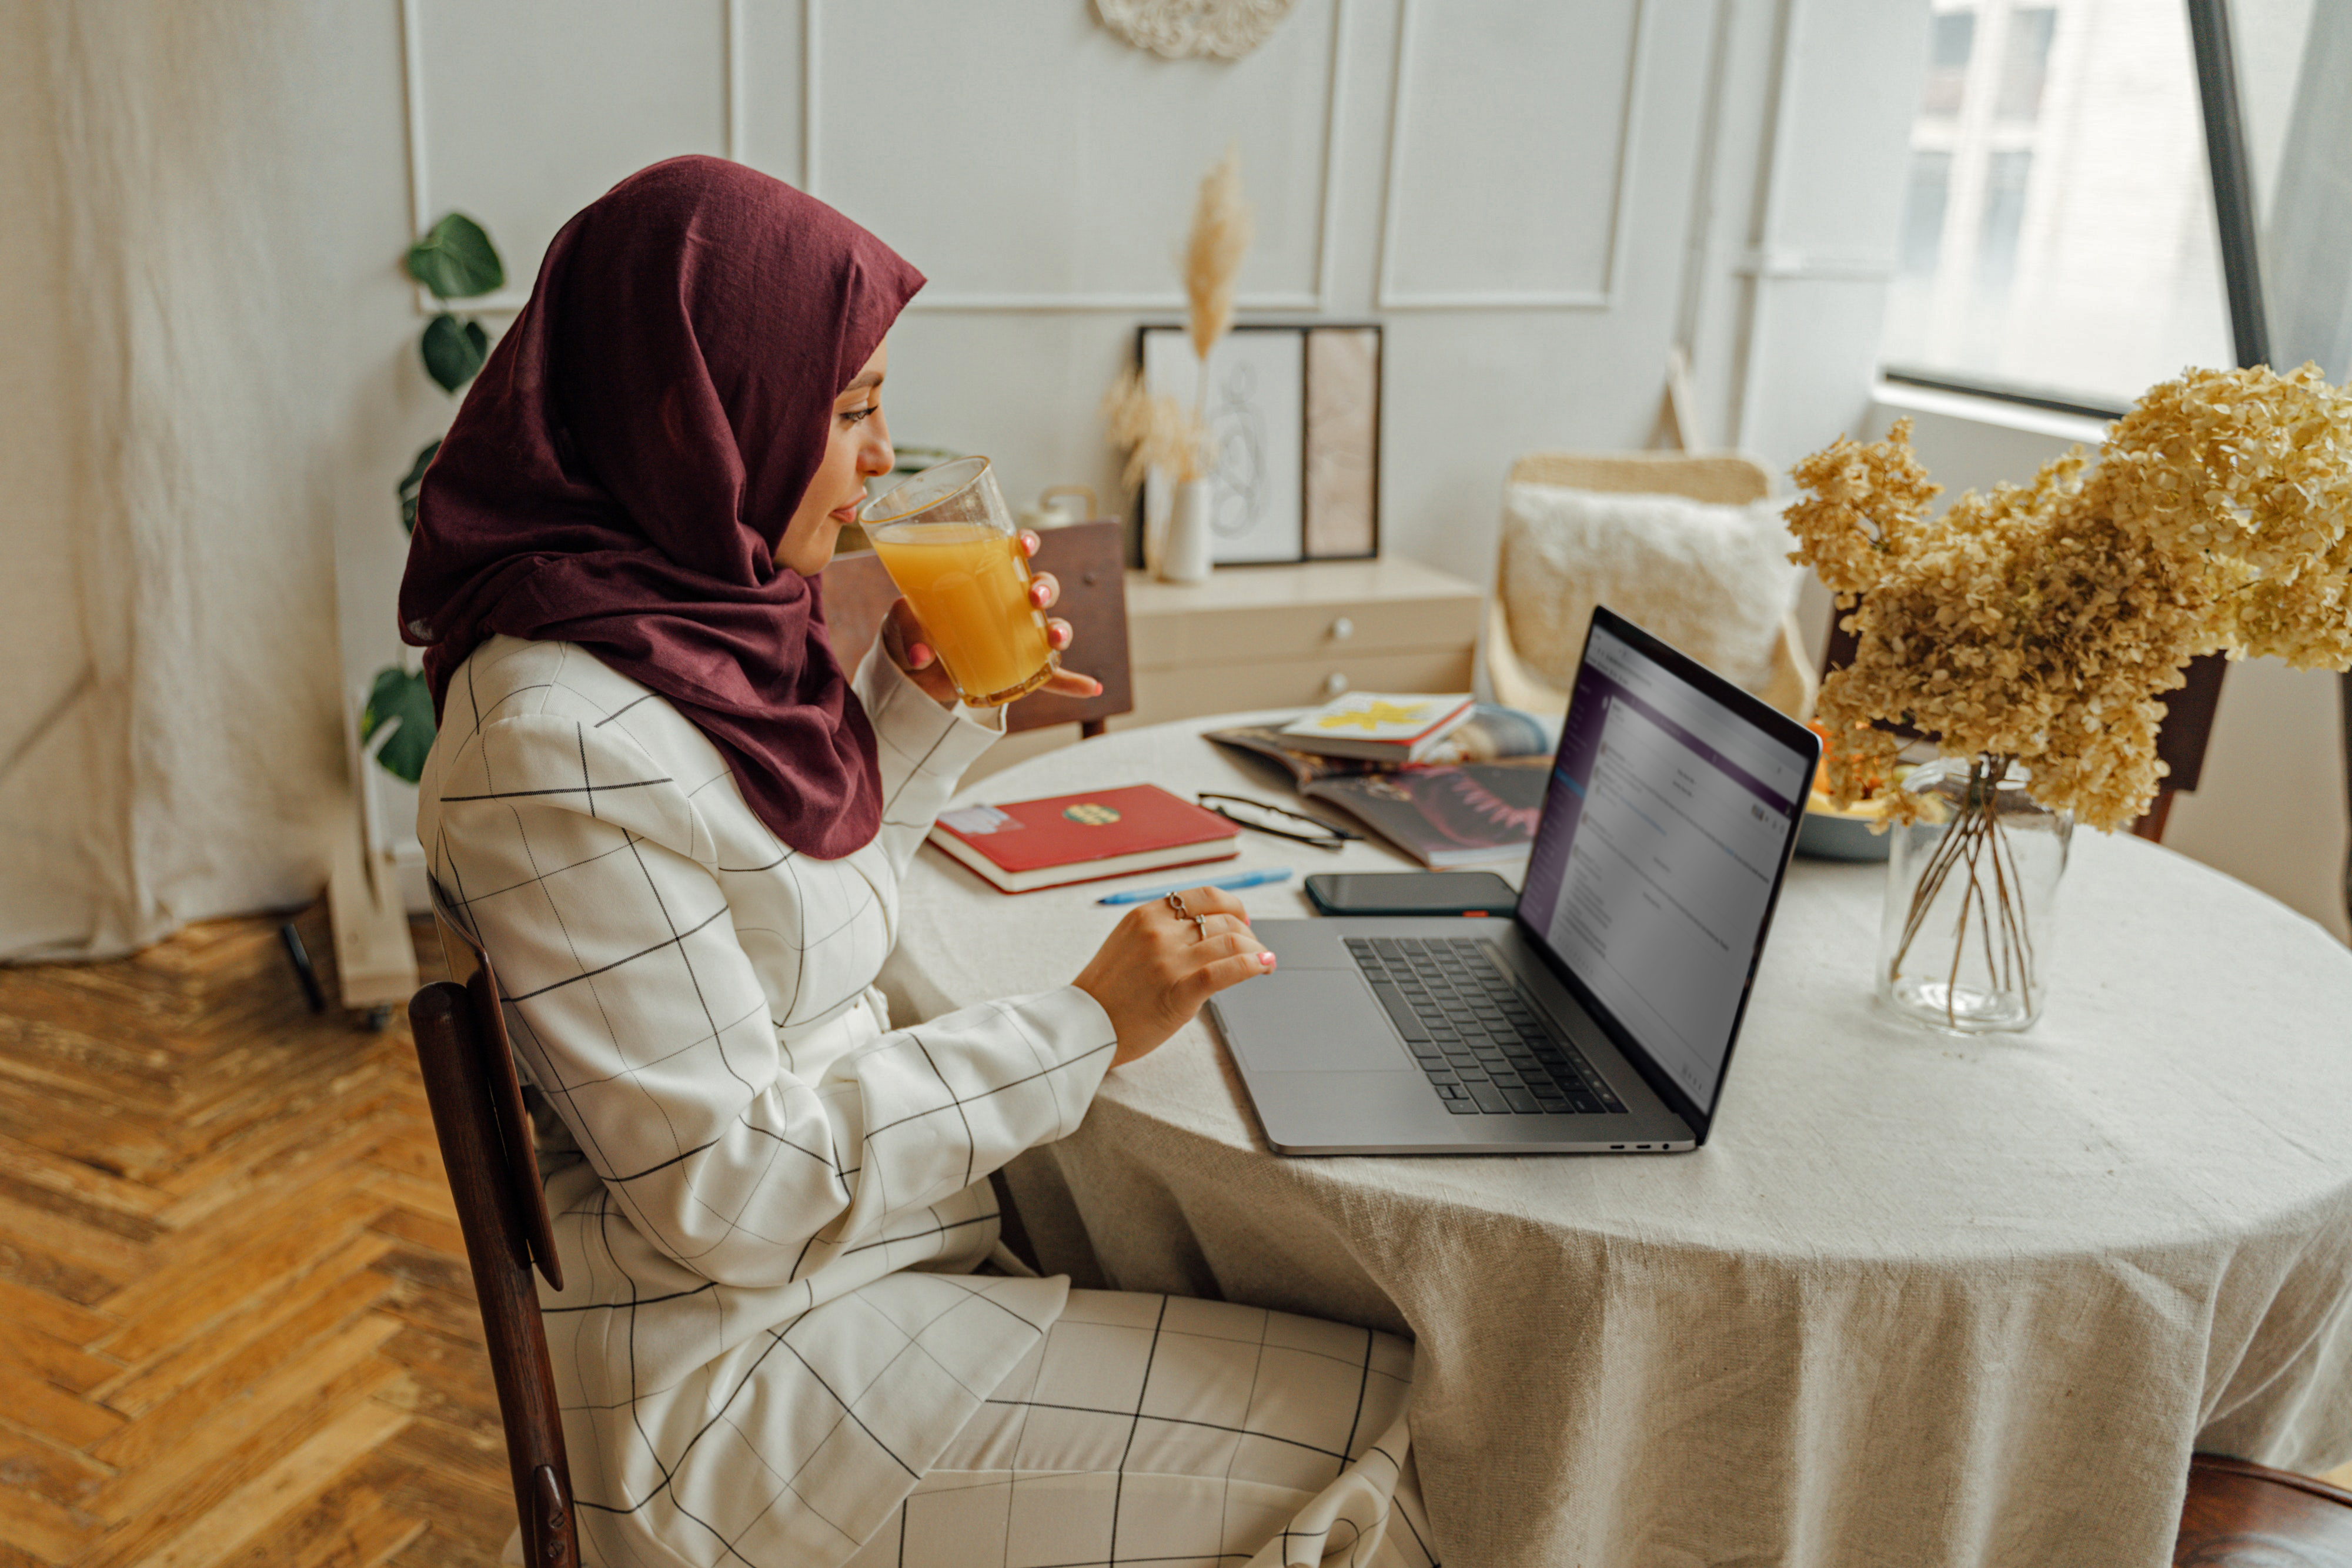 Women in home with laptop, slack on screen